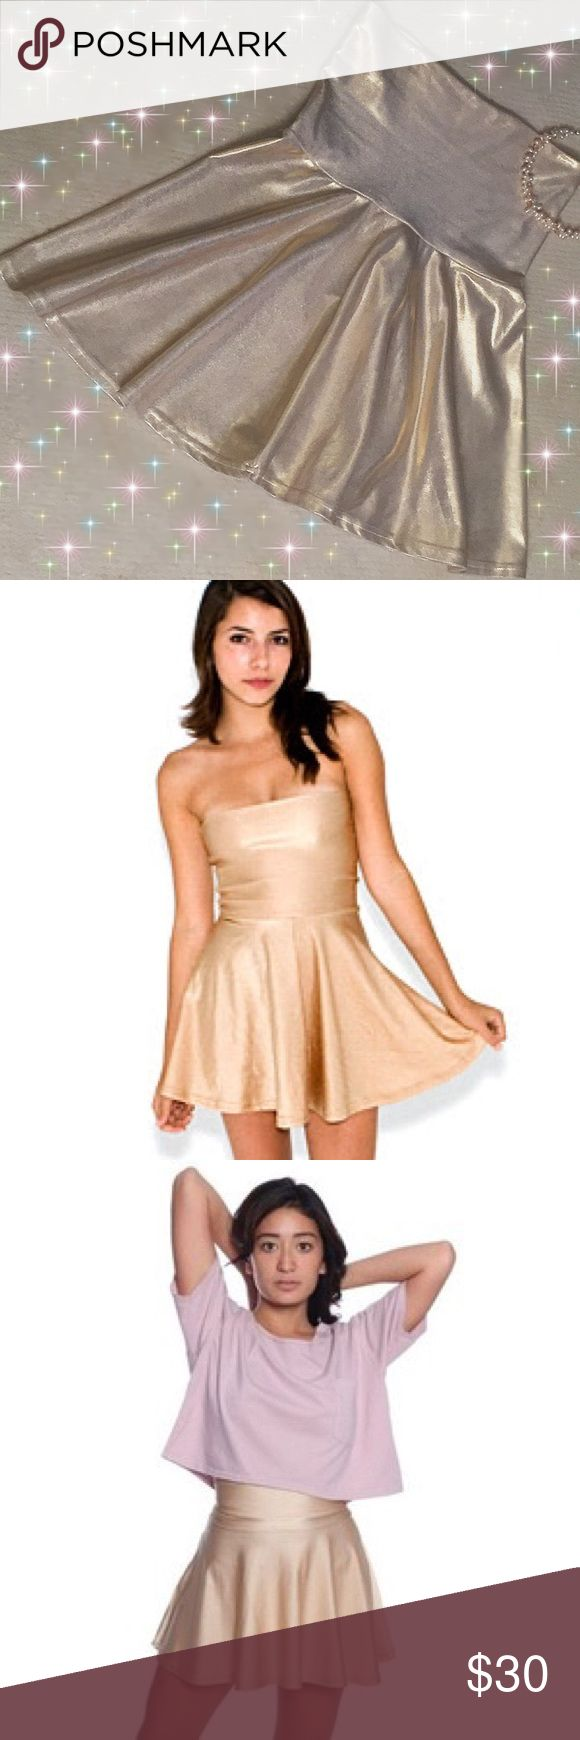 AA High-waist Skater Skirt/Tube Dress American Apparel Tricot High-waist Skater Skirt is meant to double as a short tube dress. Sparkly Creme/Gold Color. American Apparel Skirts Circle & Skater